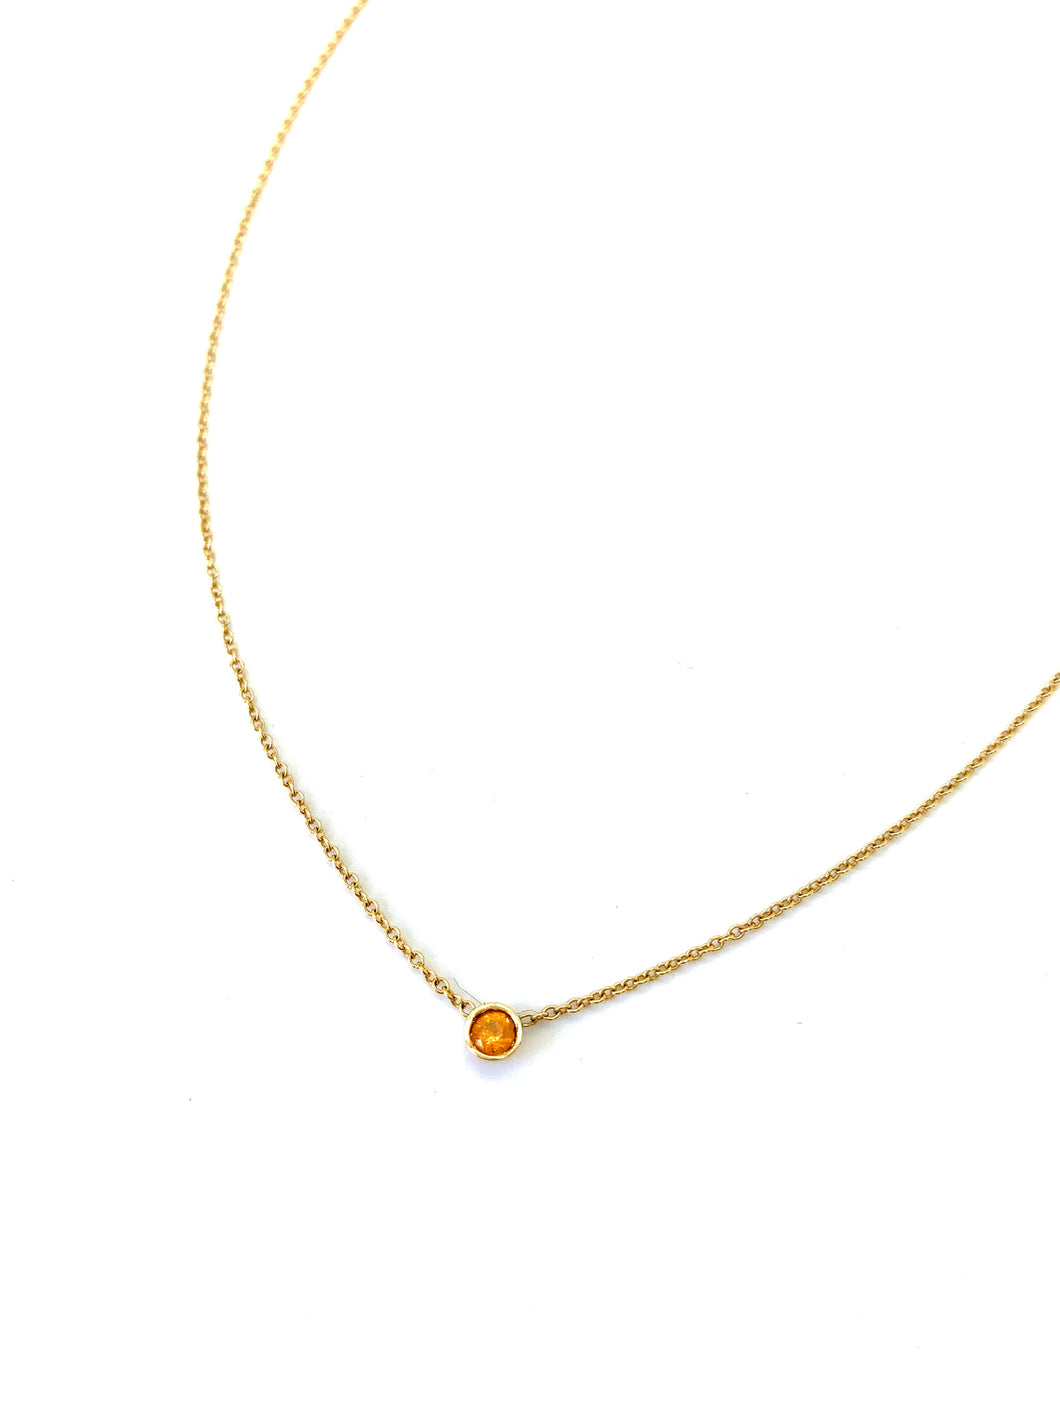 Connect to sacral chakra energy for acceptance & creativity with our orange sapphire energy necklace. Materials include a 16-inch 14k yellow gold chain with a 3mm orange sapphire gemstone. These necklaces are custom designed and hand assembled in the US. Custom variations are available by Contacting Us.